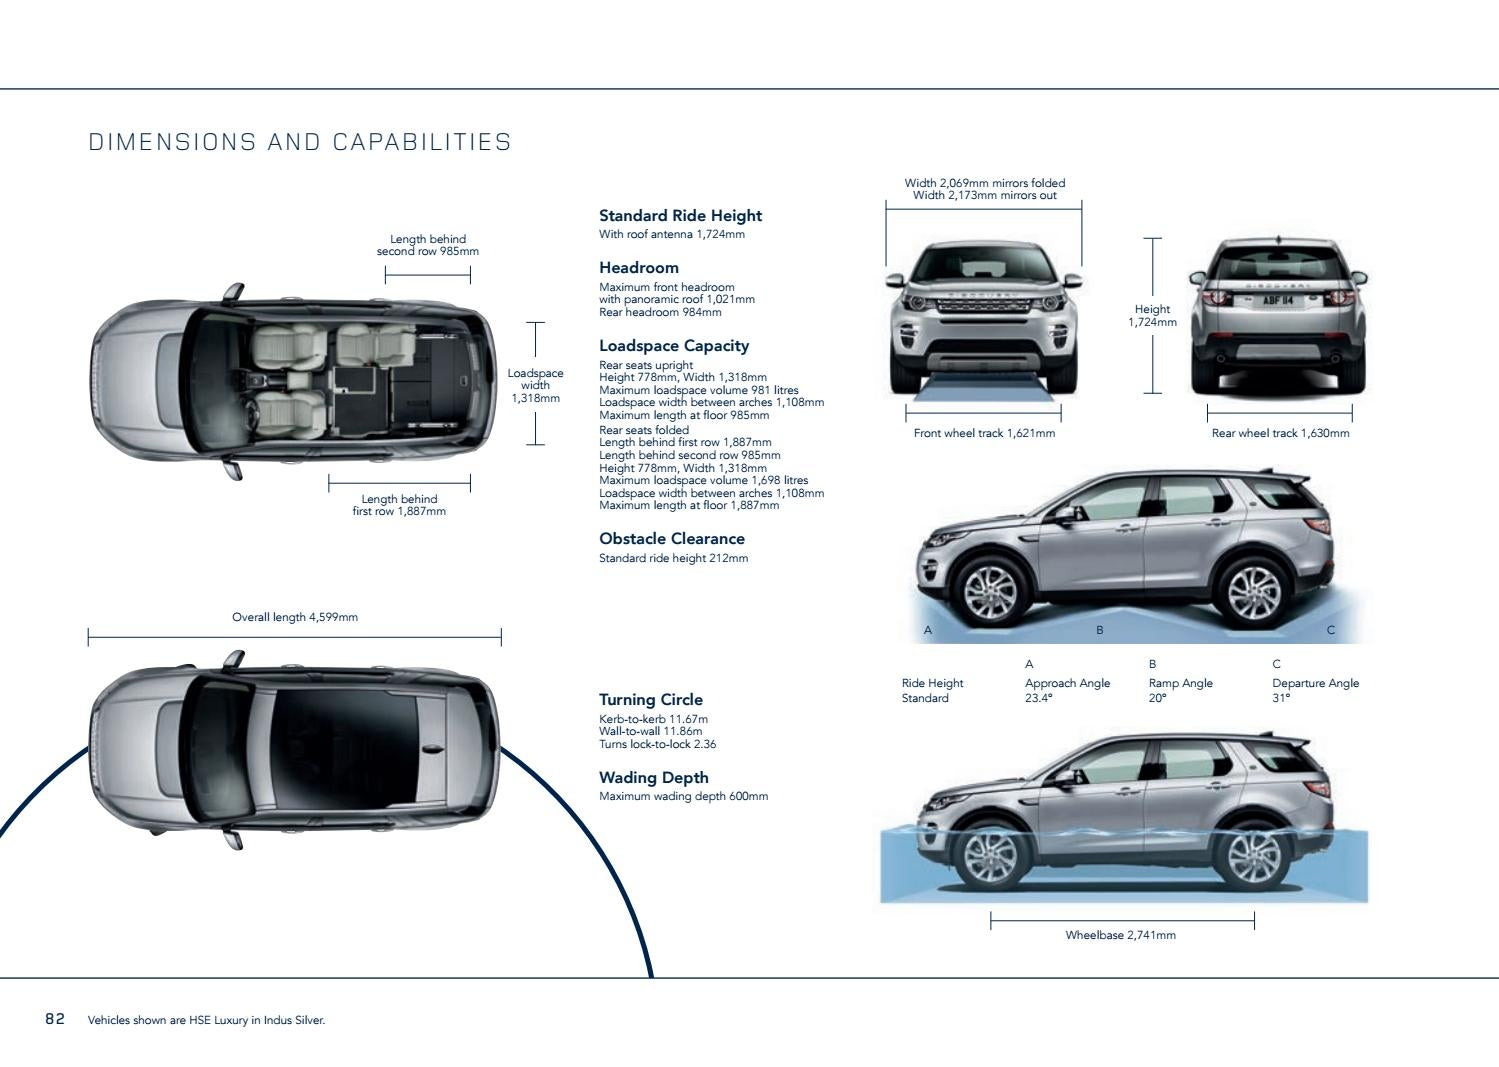 2018 land rover discovery sport brochure by stewarts - Land rover discovery interior dimensions ...